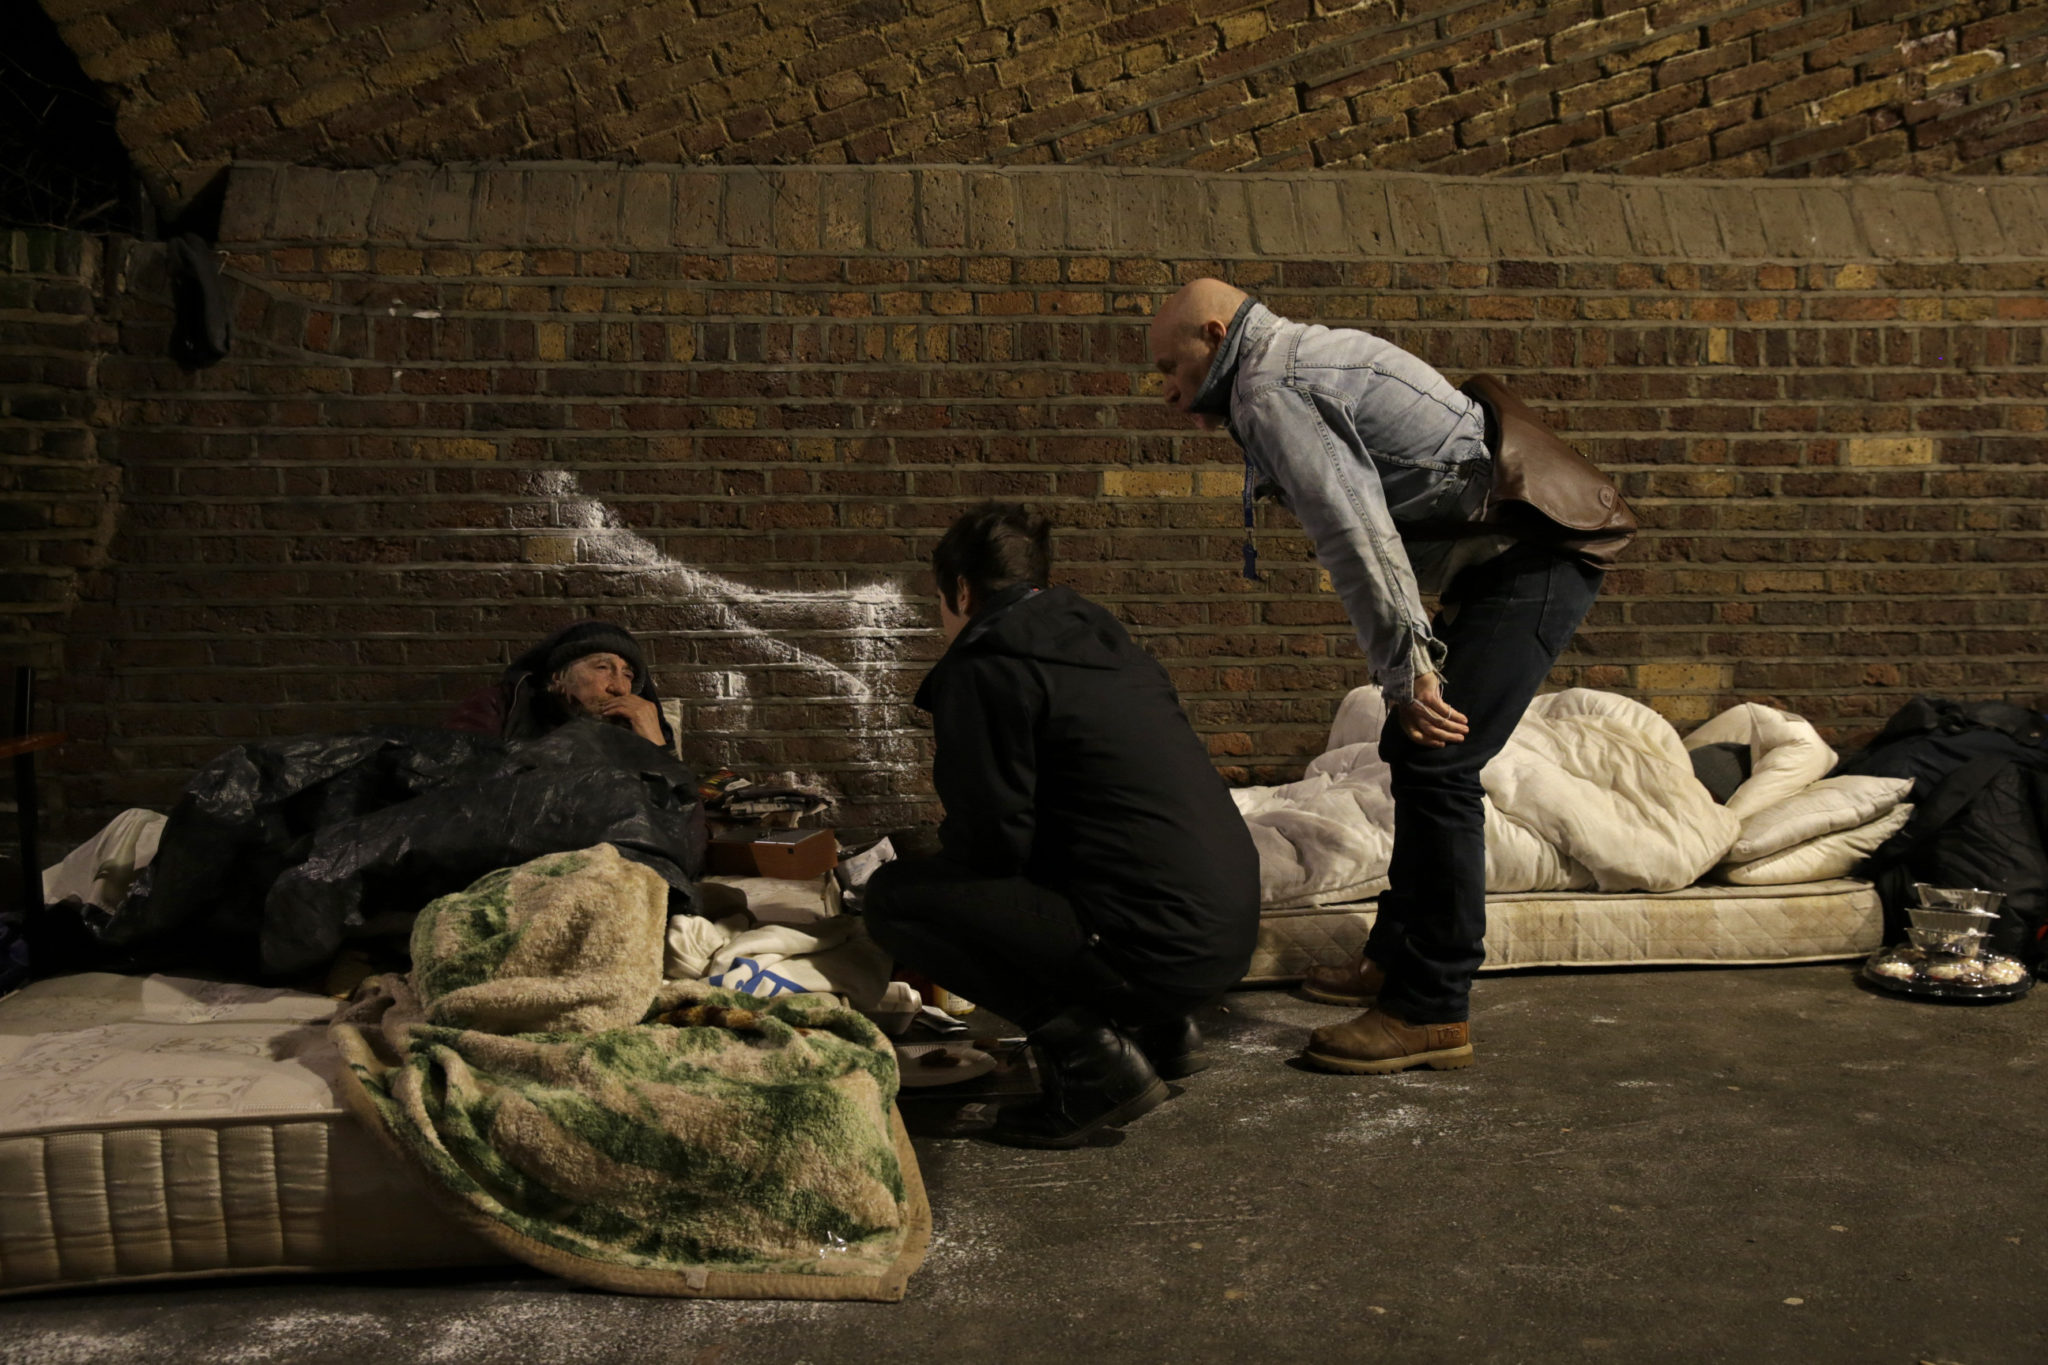 Annual rough sleeping figures show overall reduction but key concerns remain